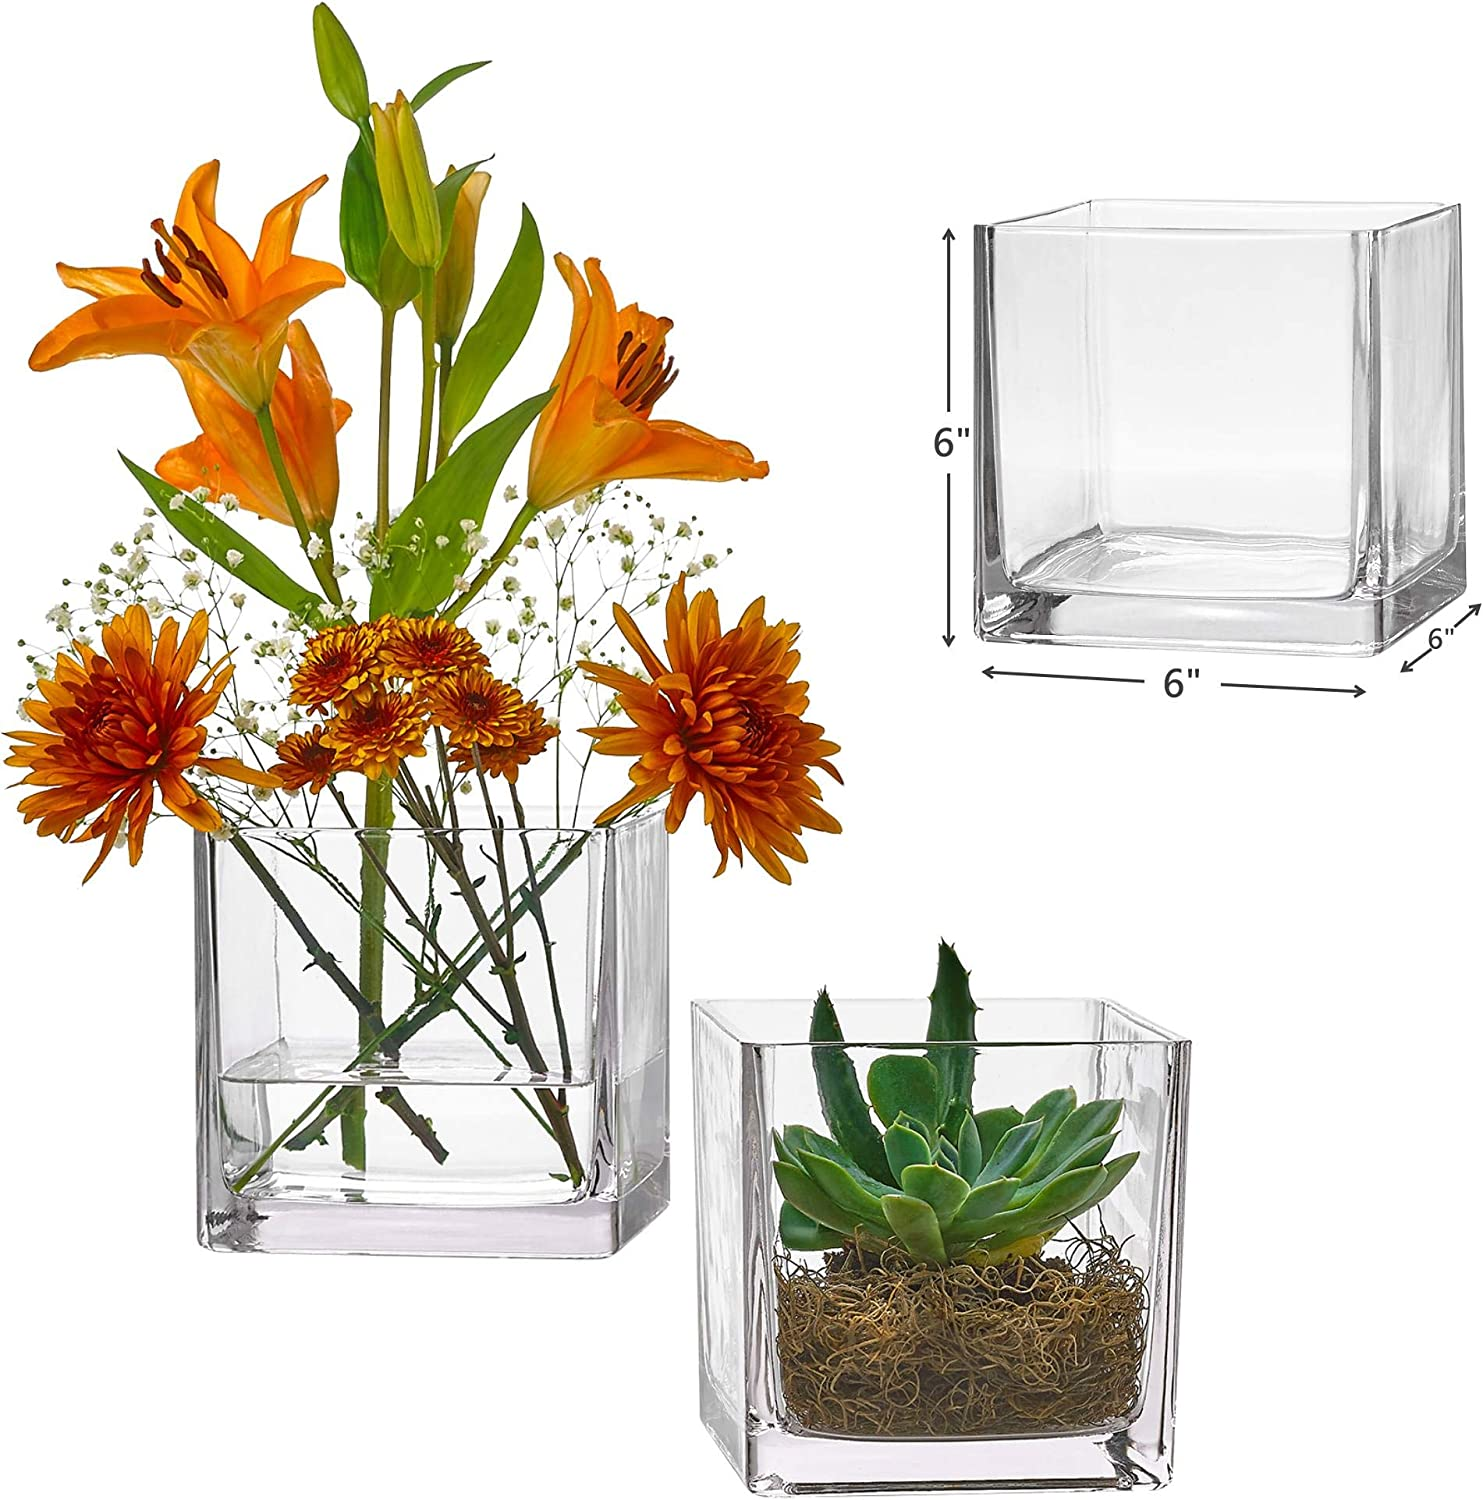 Home Decoration Candle Holders Clear Cube Shape Flower Vase PARNOO Set of 3 Glass Square Vases 6 x 6 Inch Perfect as a Wedding Centerpieces